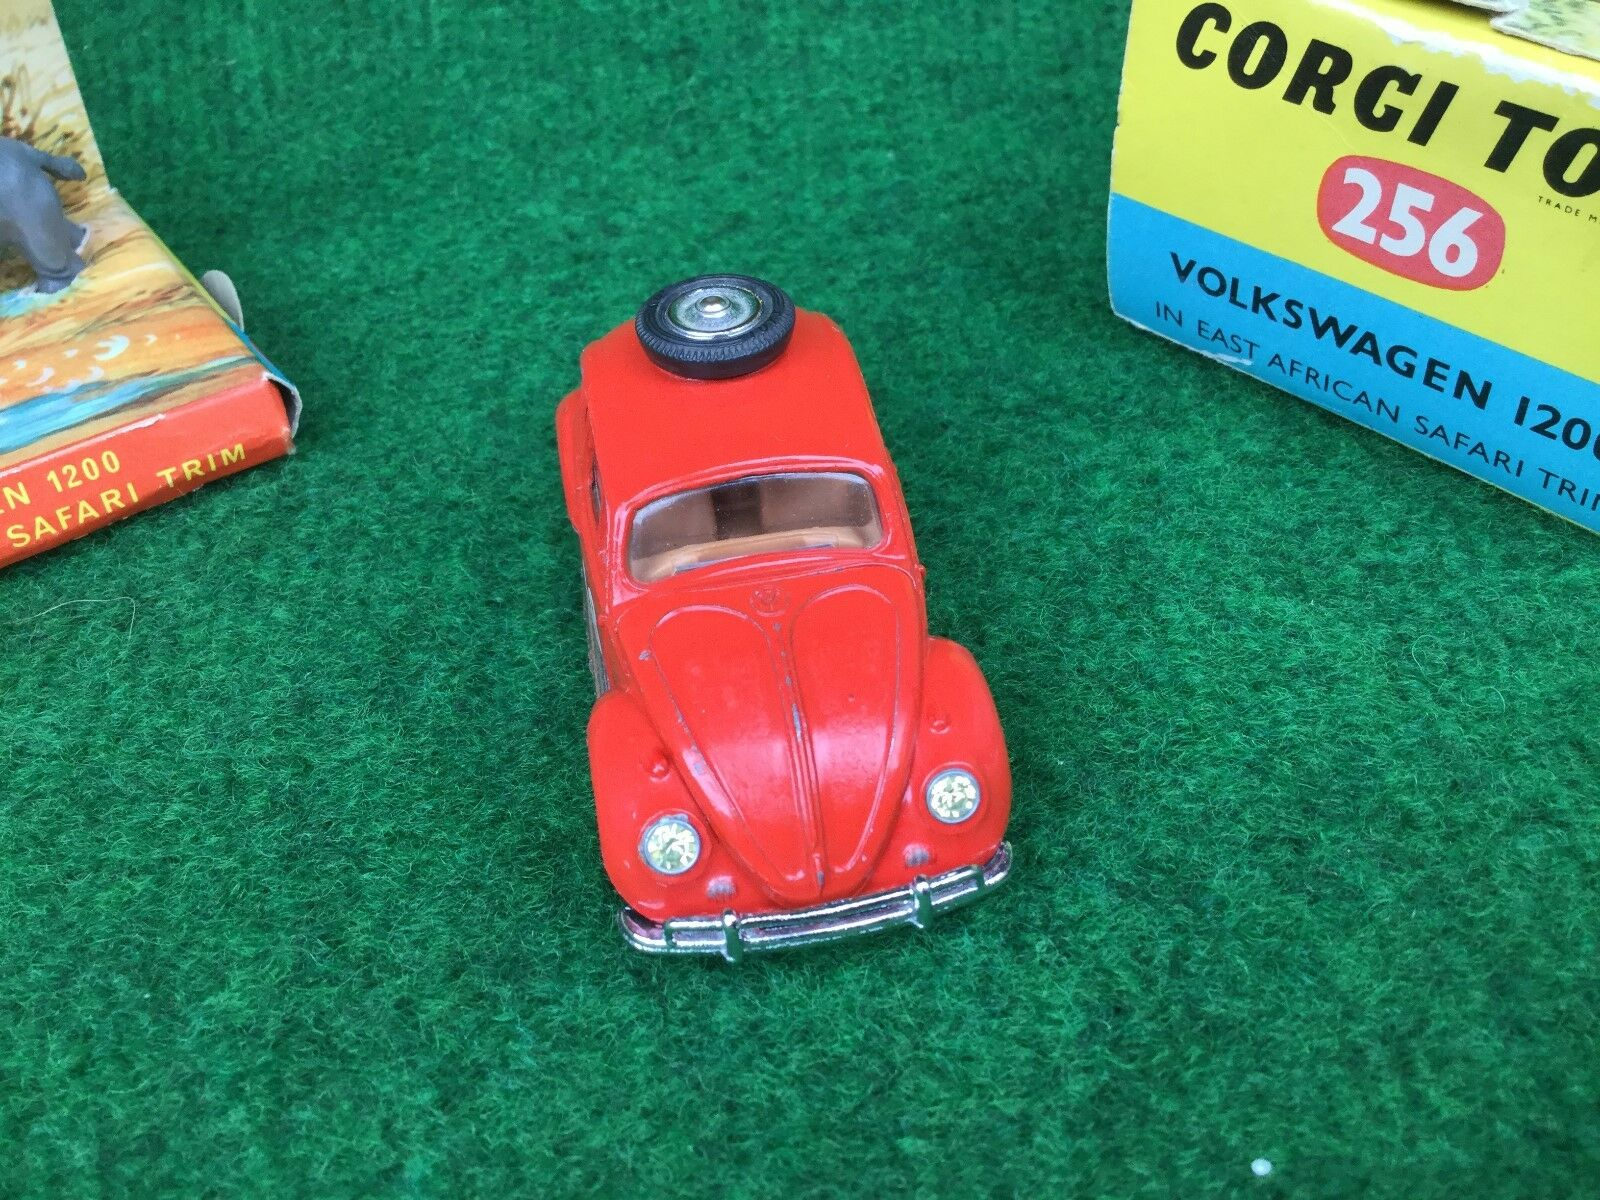 Corgi Toys no. 256 Volkswagen VW 1200 in in in East African Safari Trim Boxed 701de6